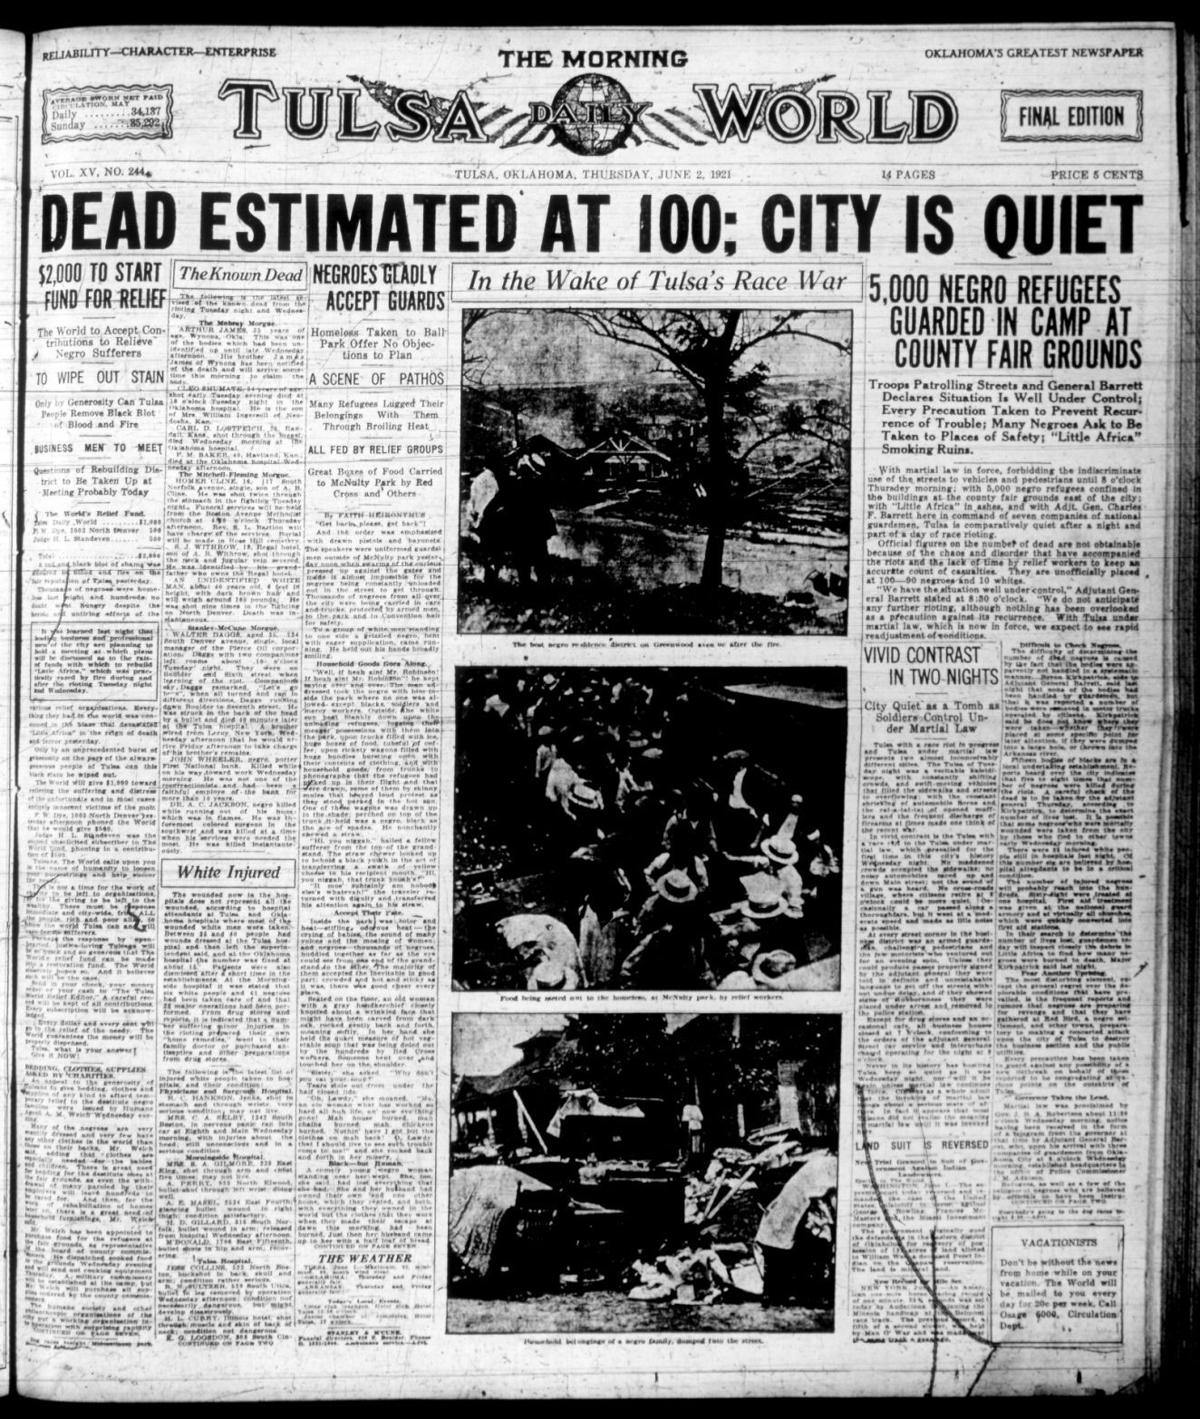 Tulsa Race Riot: June 2, 1921: Read The Tulsa World's Account Of The Tulsa